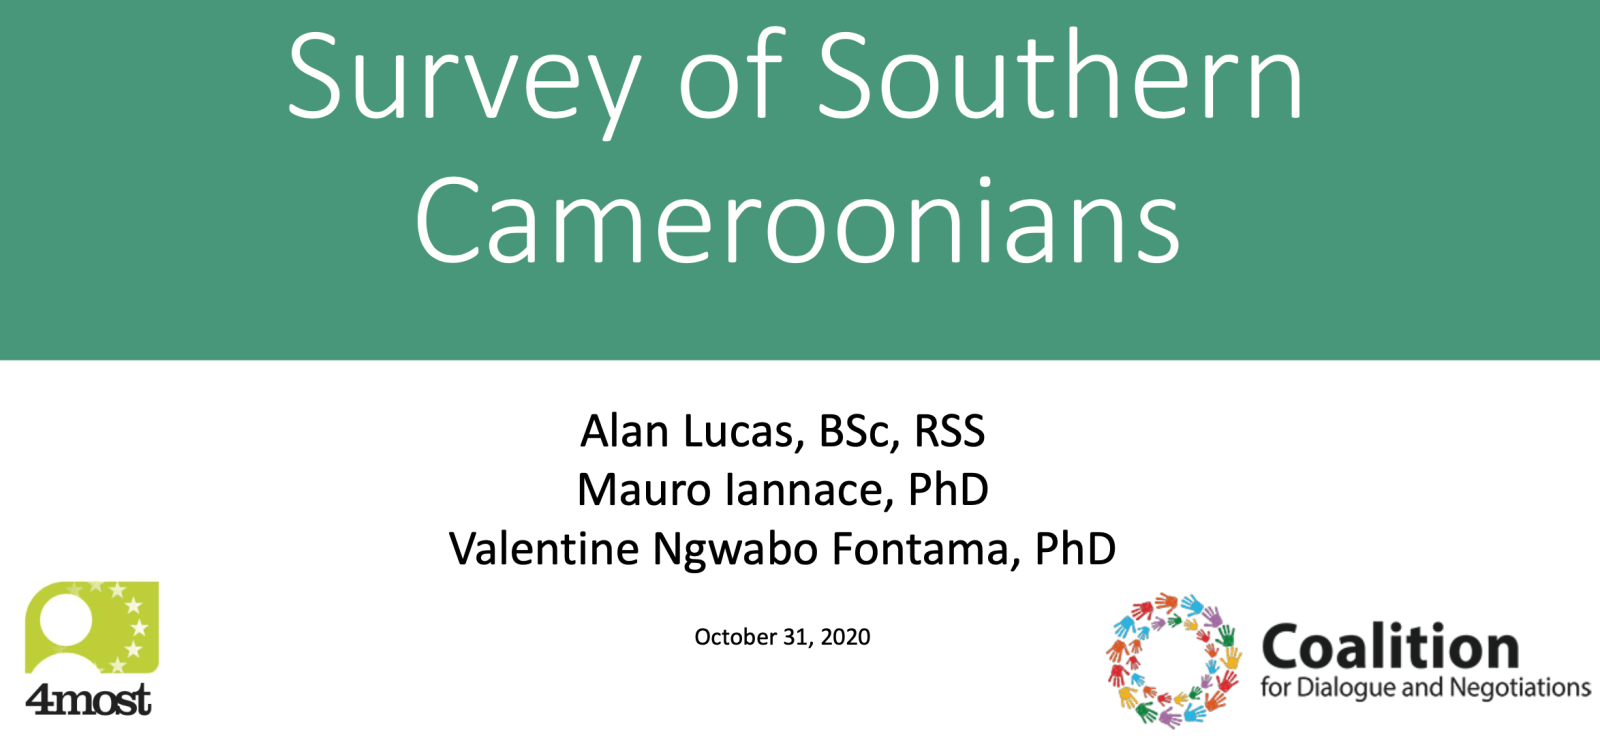 Survey of Southern Cameroonians Shows Overwhelming Support Full Independence